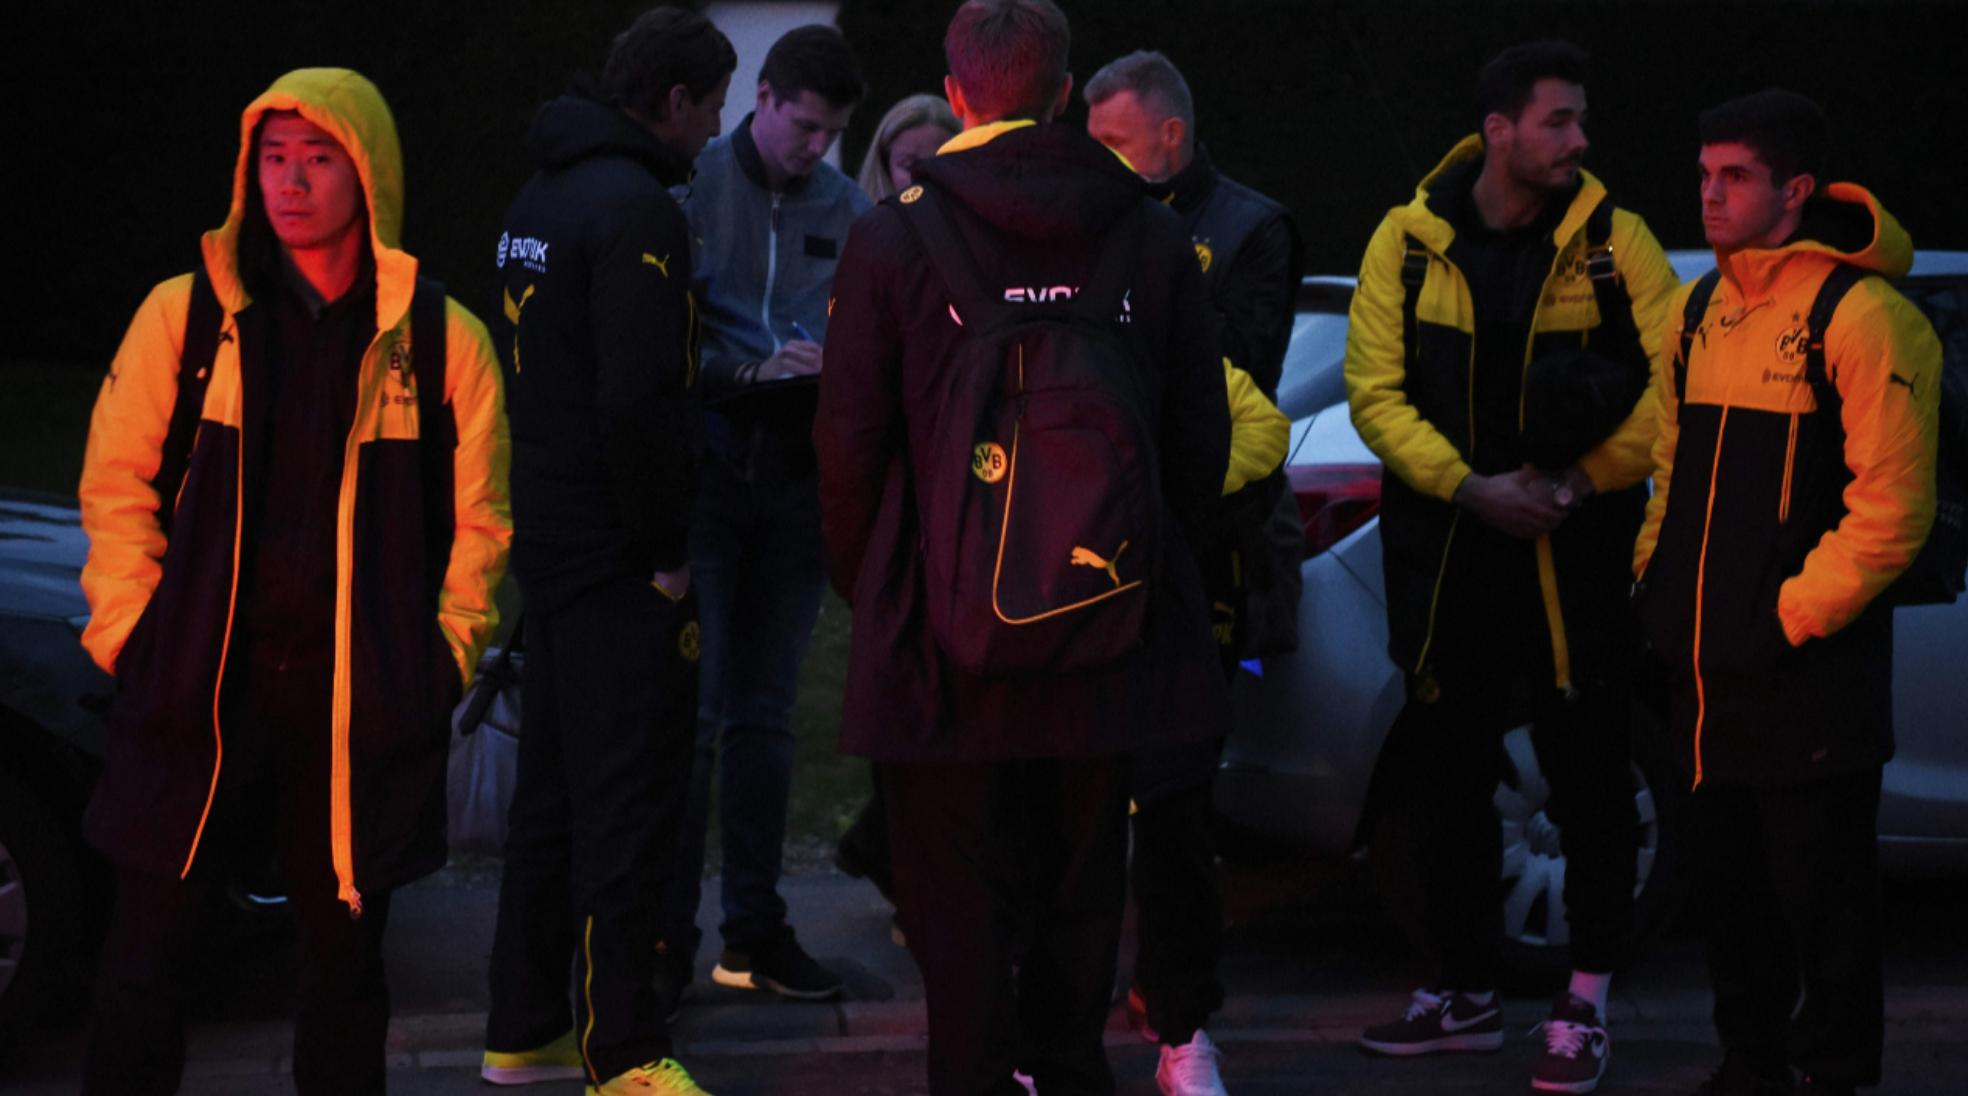 There has been an explosion close to the BVB-teambus, the game against Monaco could be cancelled kagawa